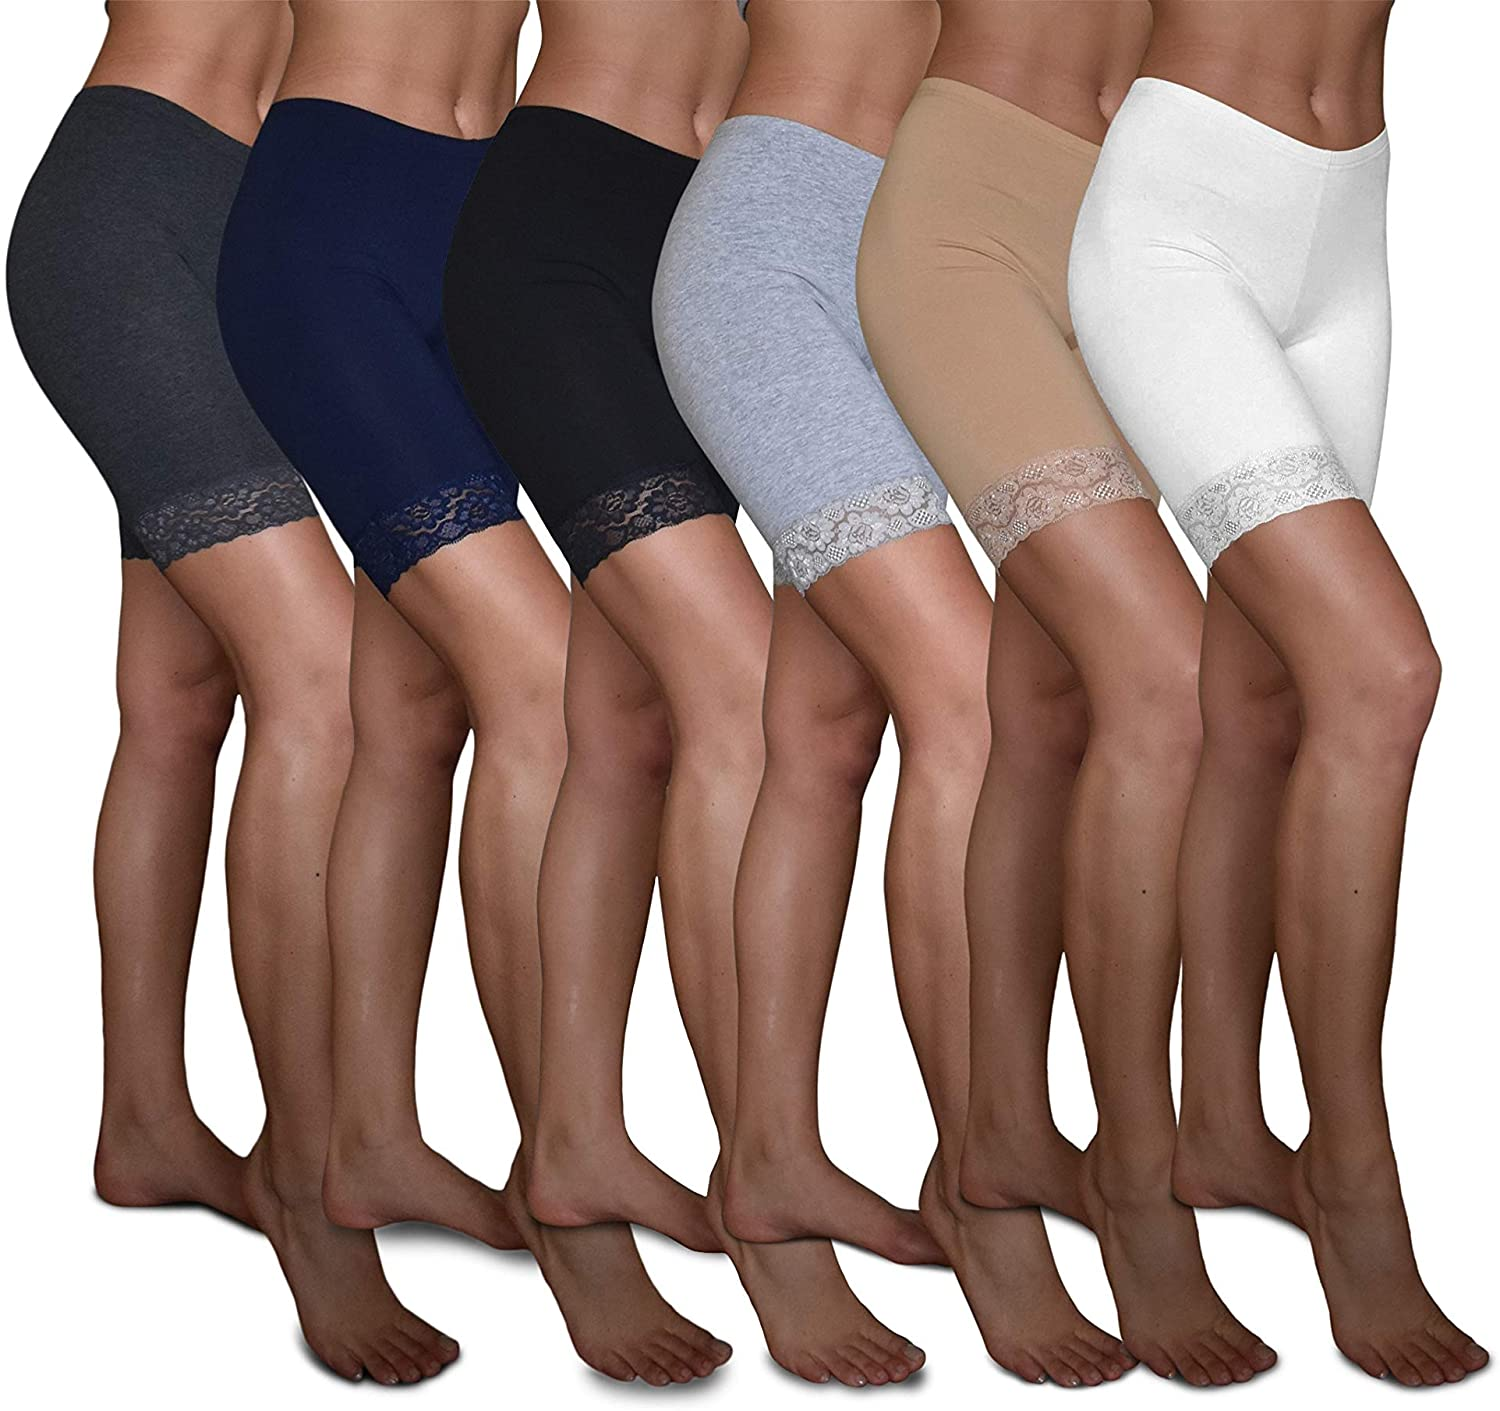 Sexy Basics Slip Shorts | 6 Pack Active Dance Running Yoga Bike Shorts | Cotton Spandex Lace Trim Boxer Brief/Bike Shorts